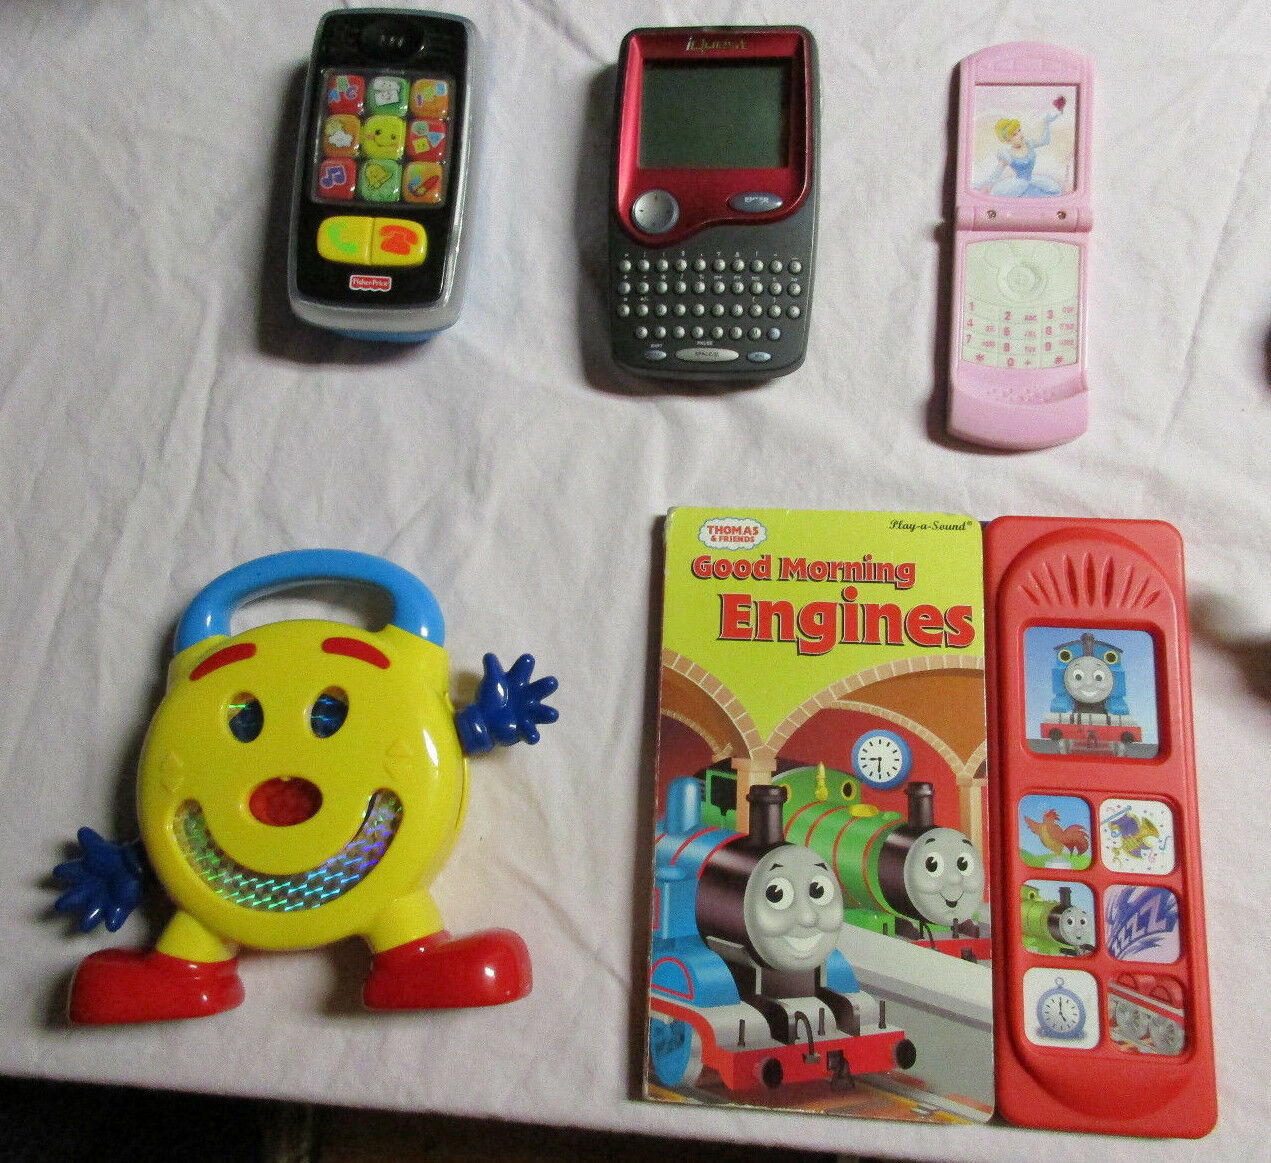 WOW Huge Lot of Kids Educational Systems, Games, Toys. 75 75 75 + Kids Dream Present 864a4f